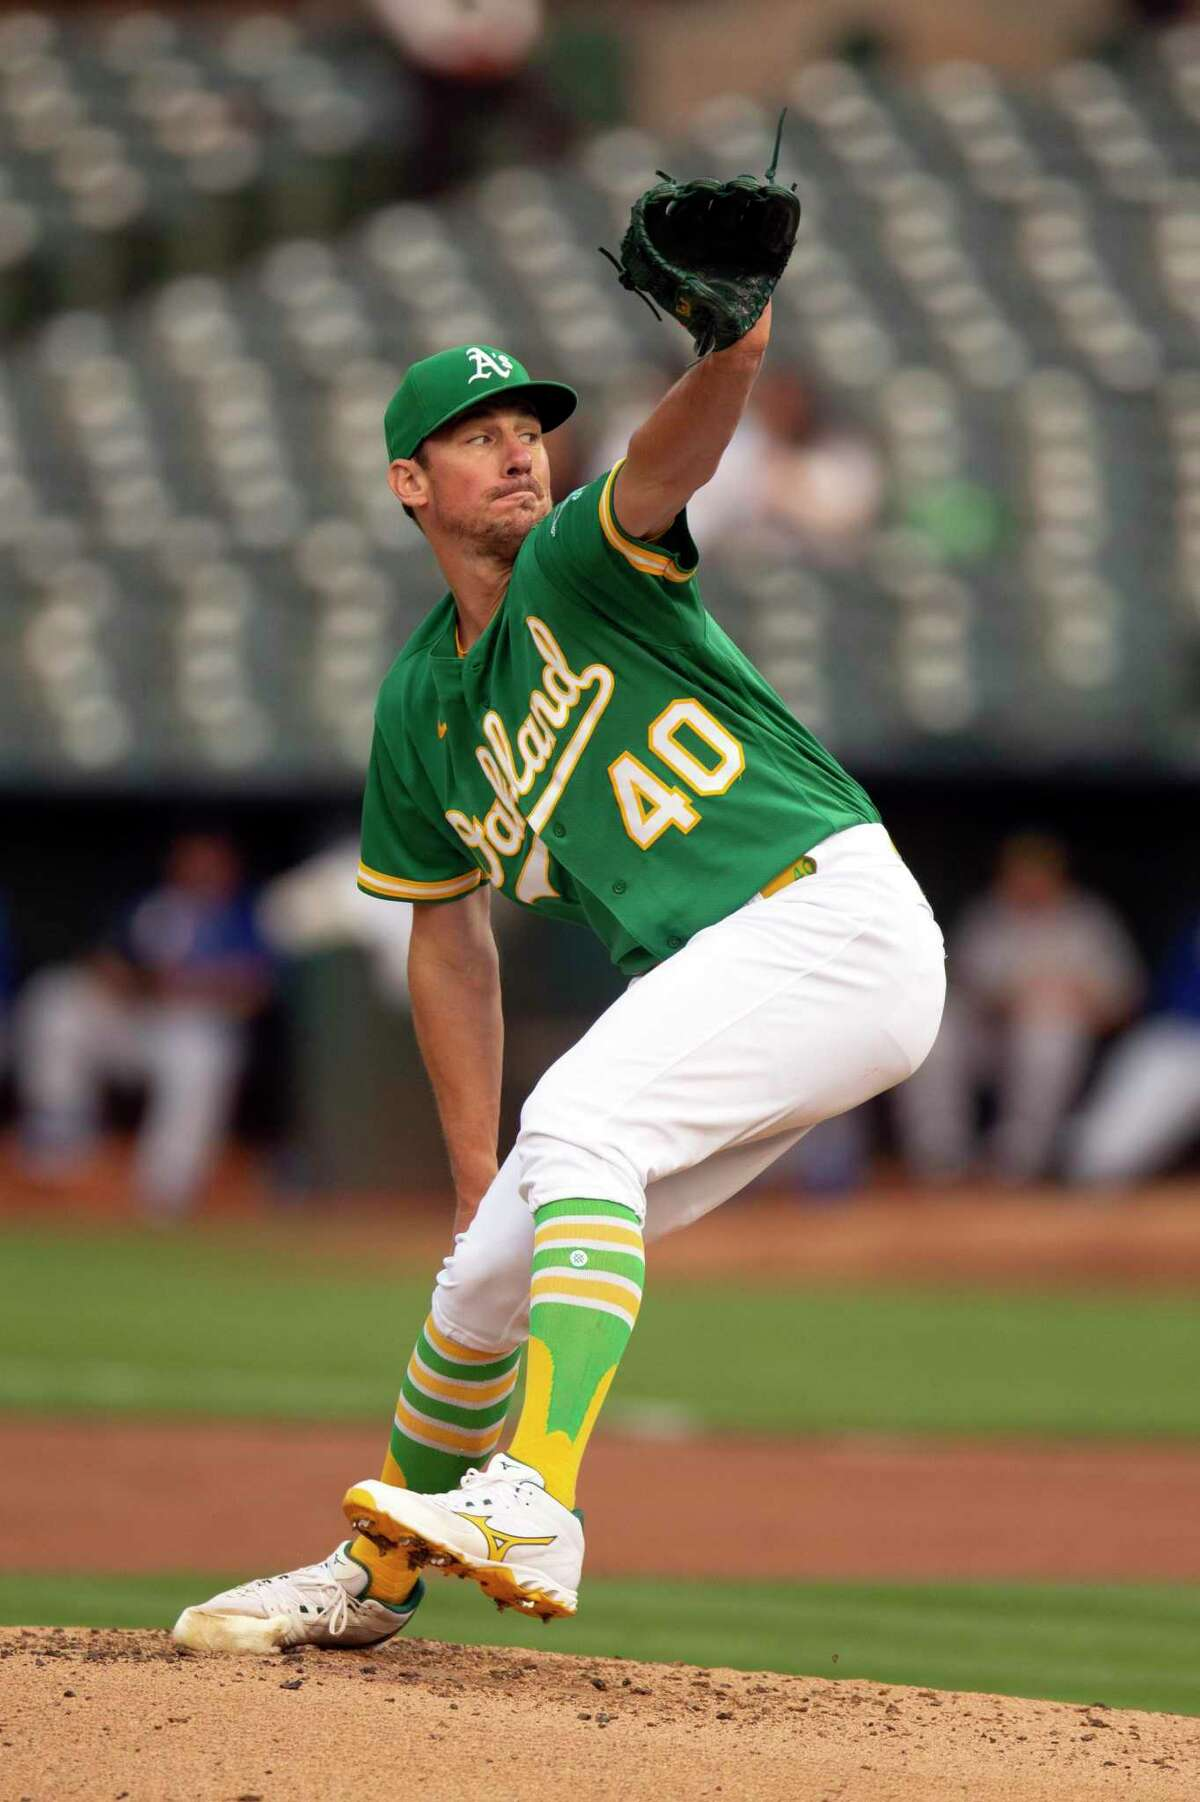 Oakland Athletics starting pitcher Chris Bassitt (40) delivers against the Texas Rangers during the second inning of a baseball game, Friday, Aug. 6, 2021, in Oakland, Calif. (AP Photo/D. Ross Cameron)